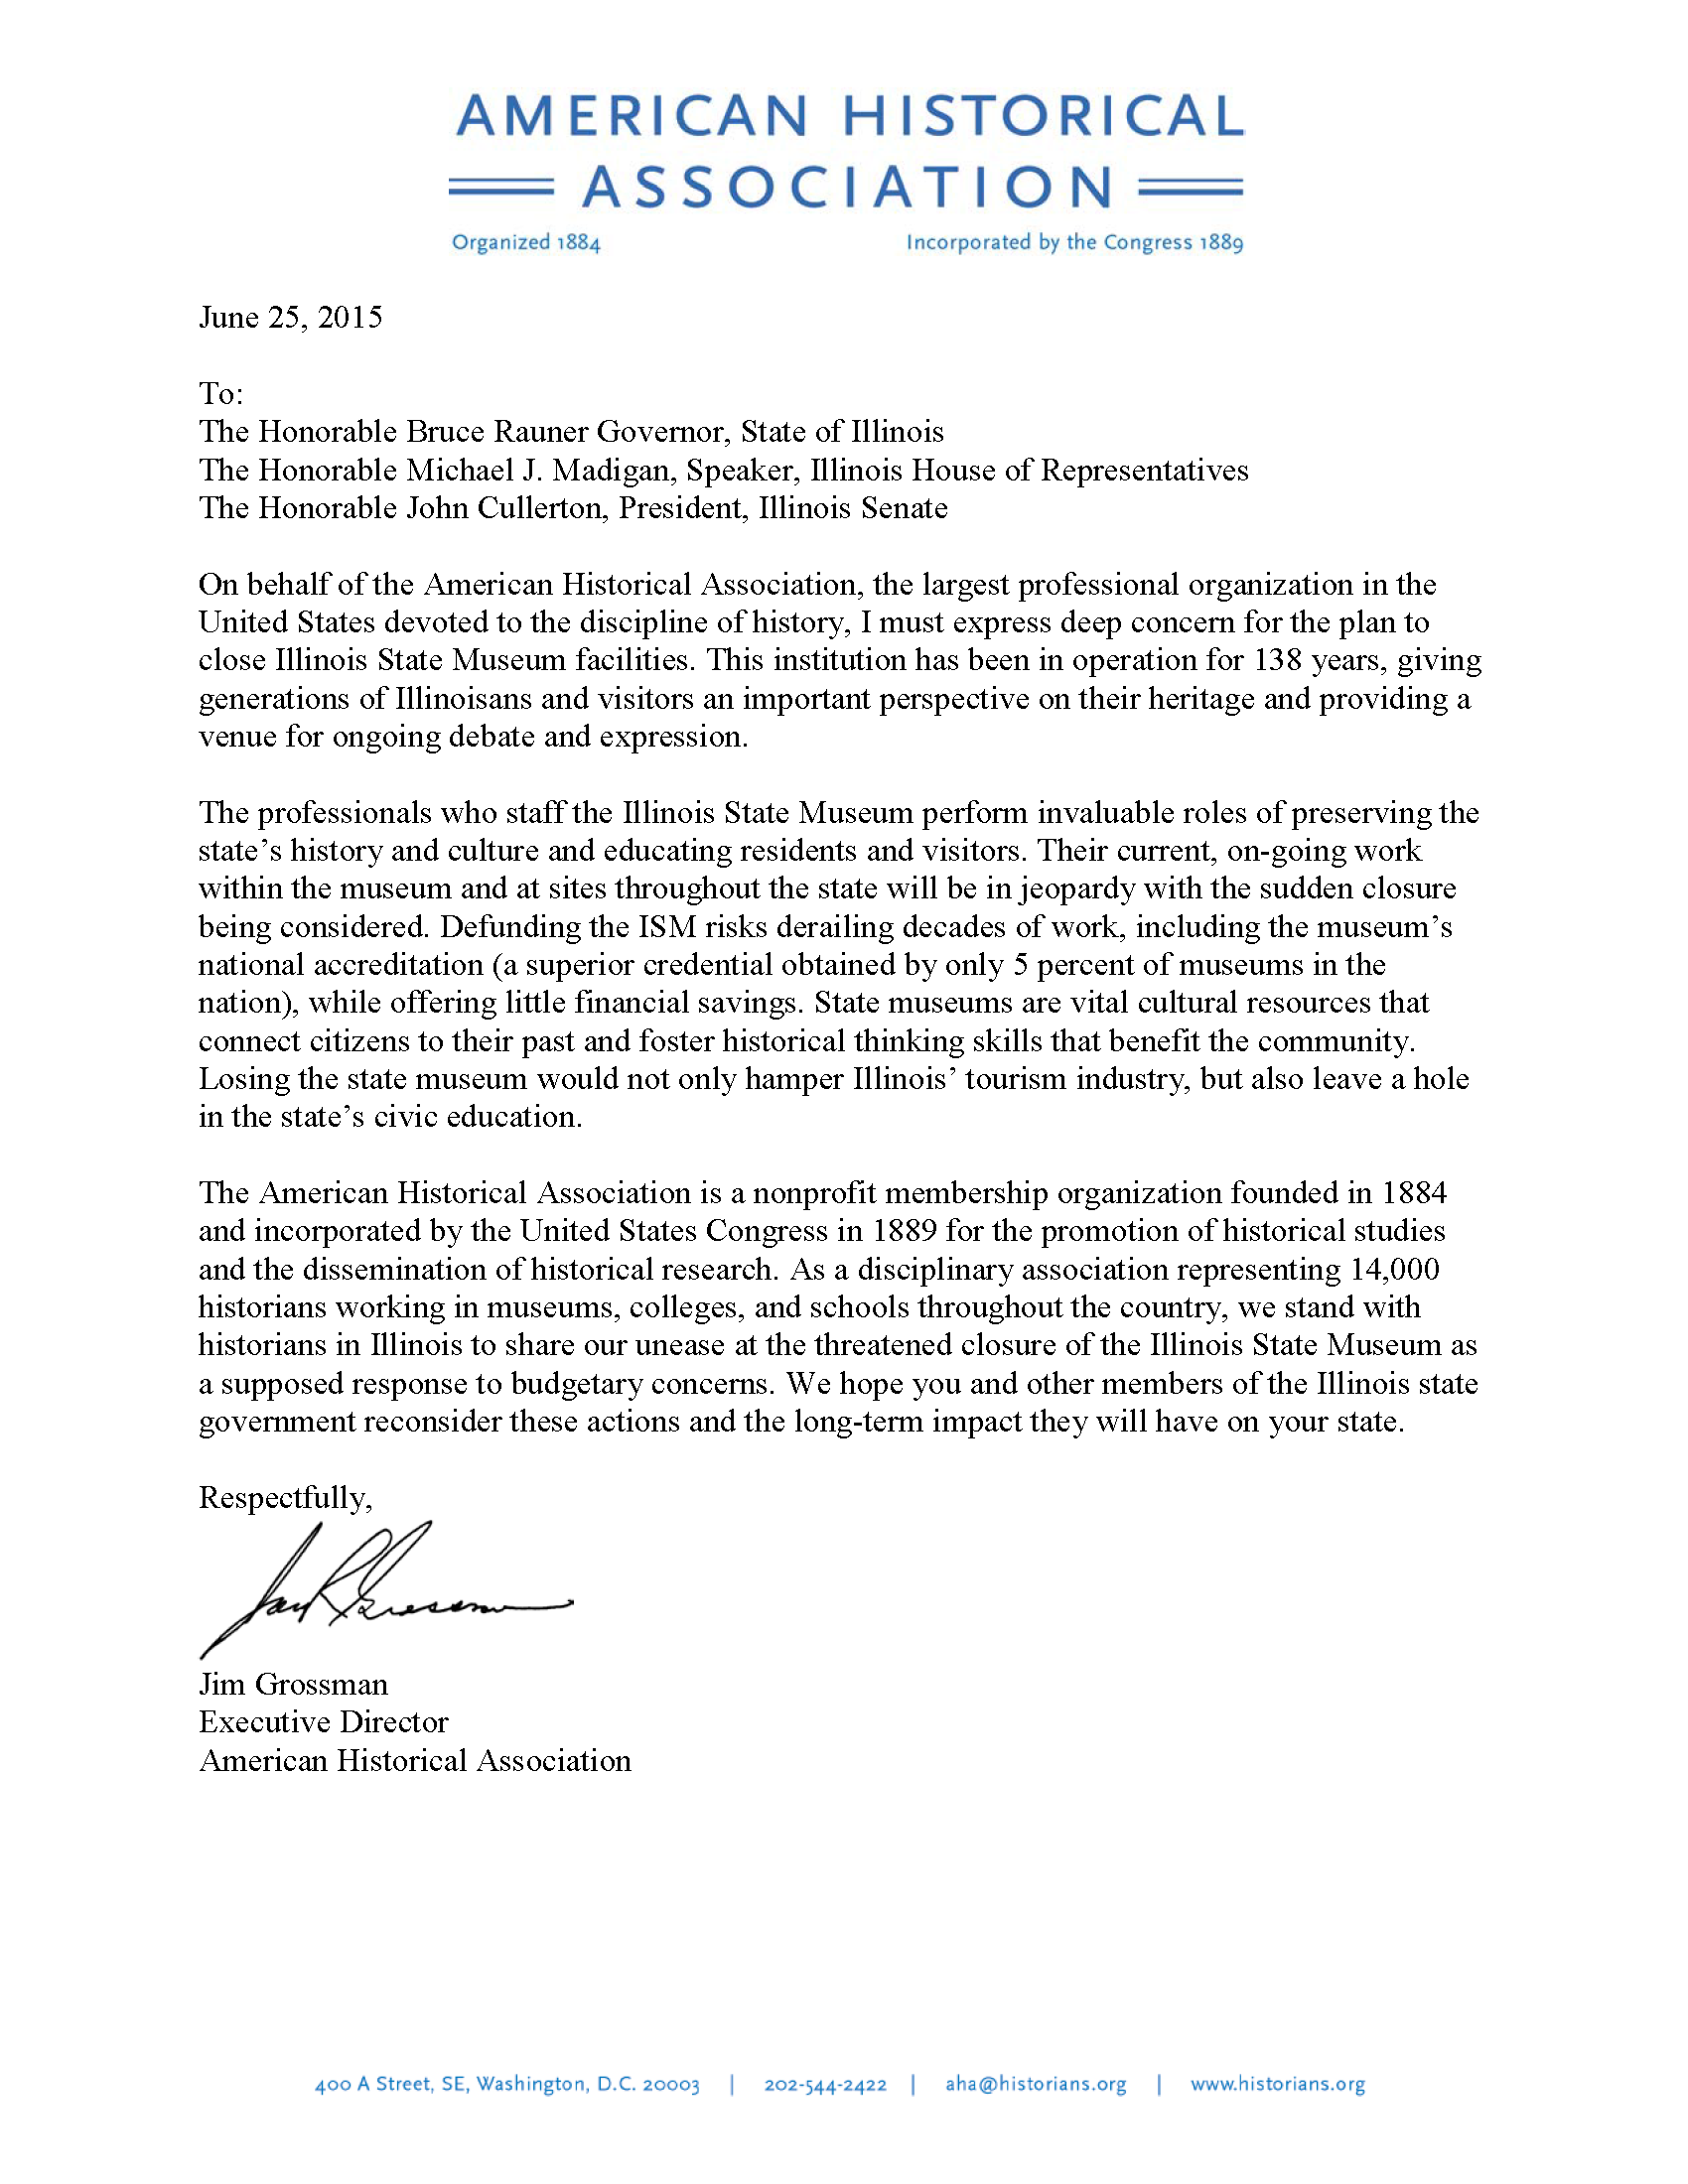 Letter Of Concern Regarding The Possible Closure Illinois